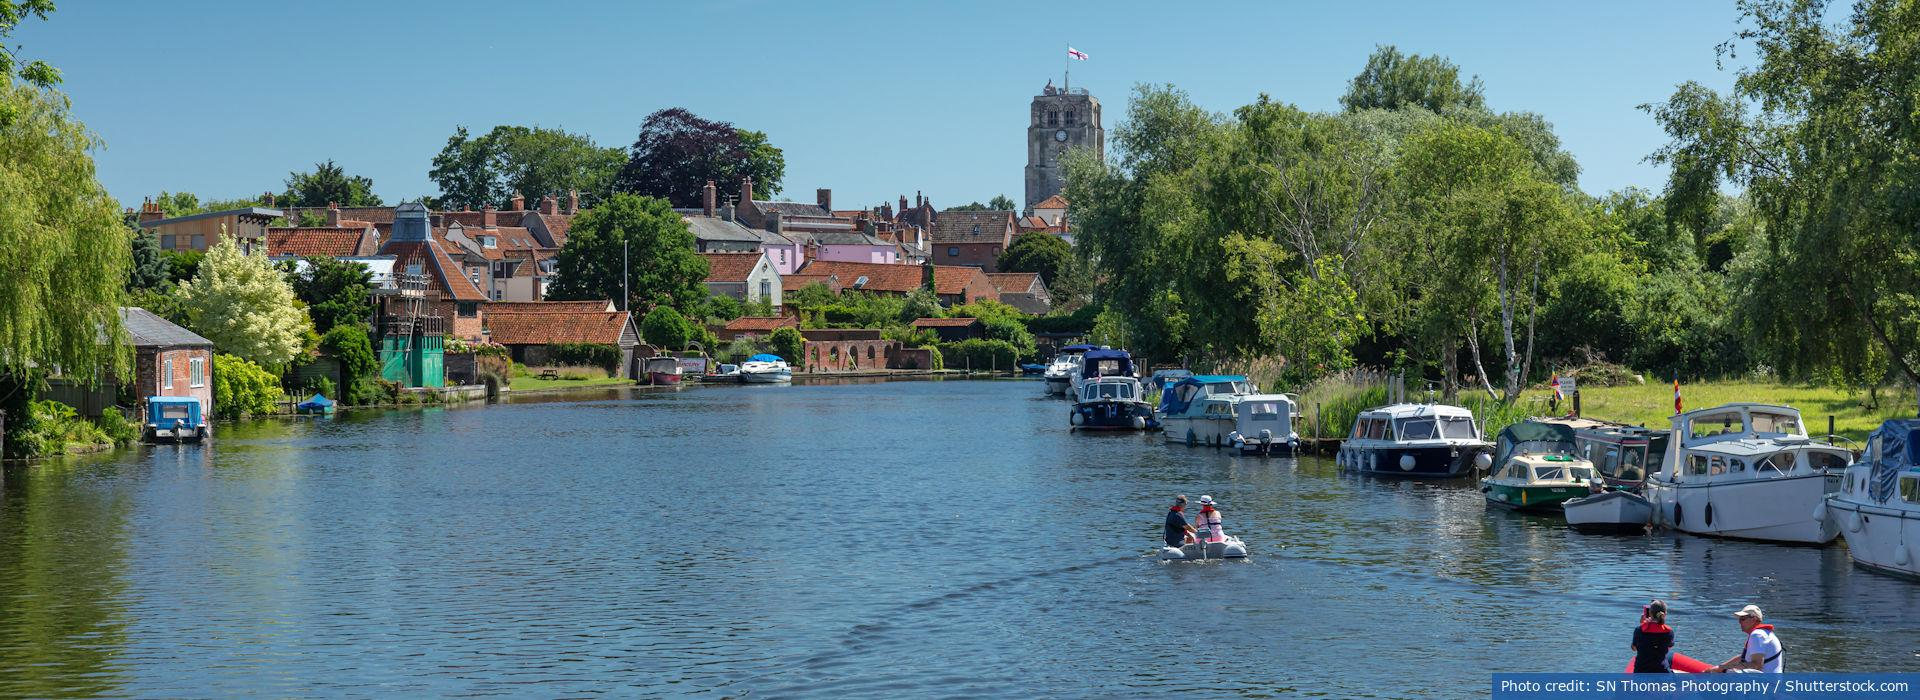 Beccles, Photo credit: SN Thomas Photography / Shutterstock.com